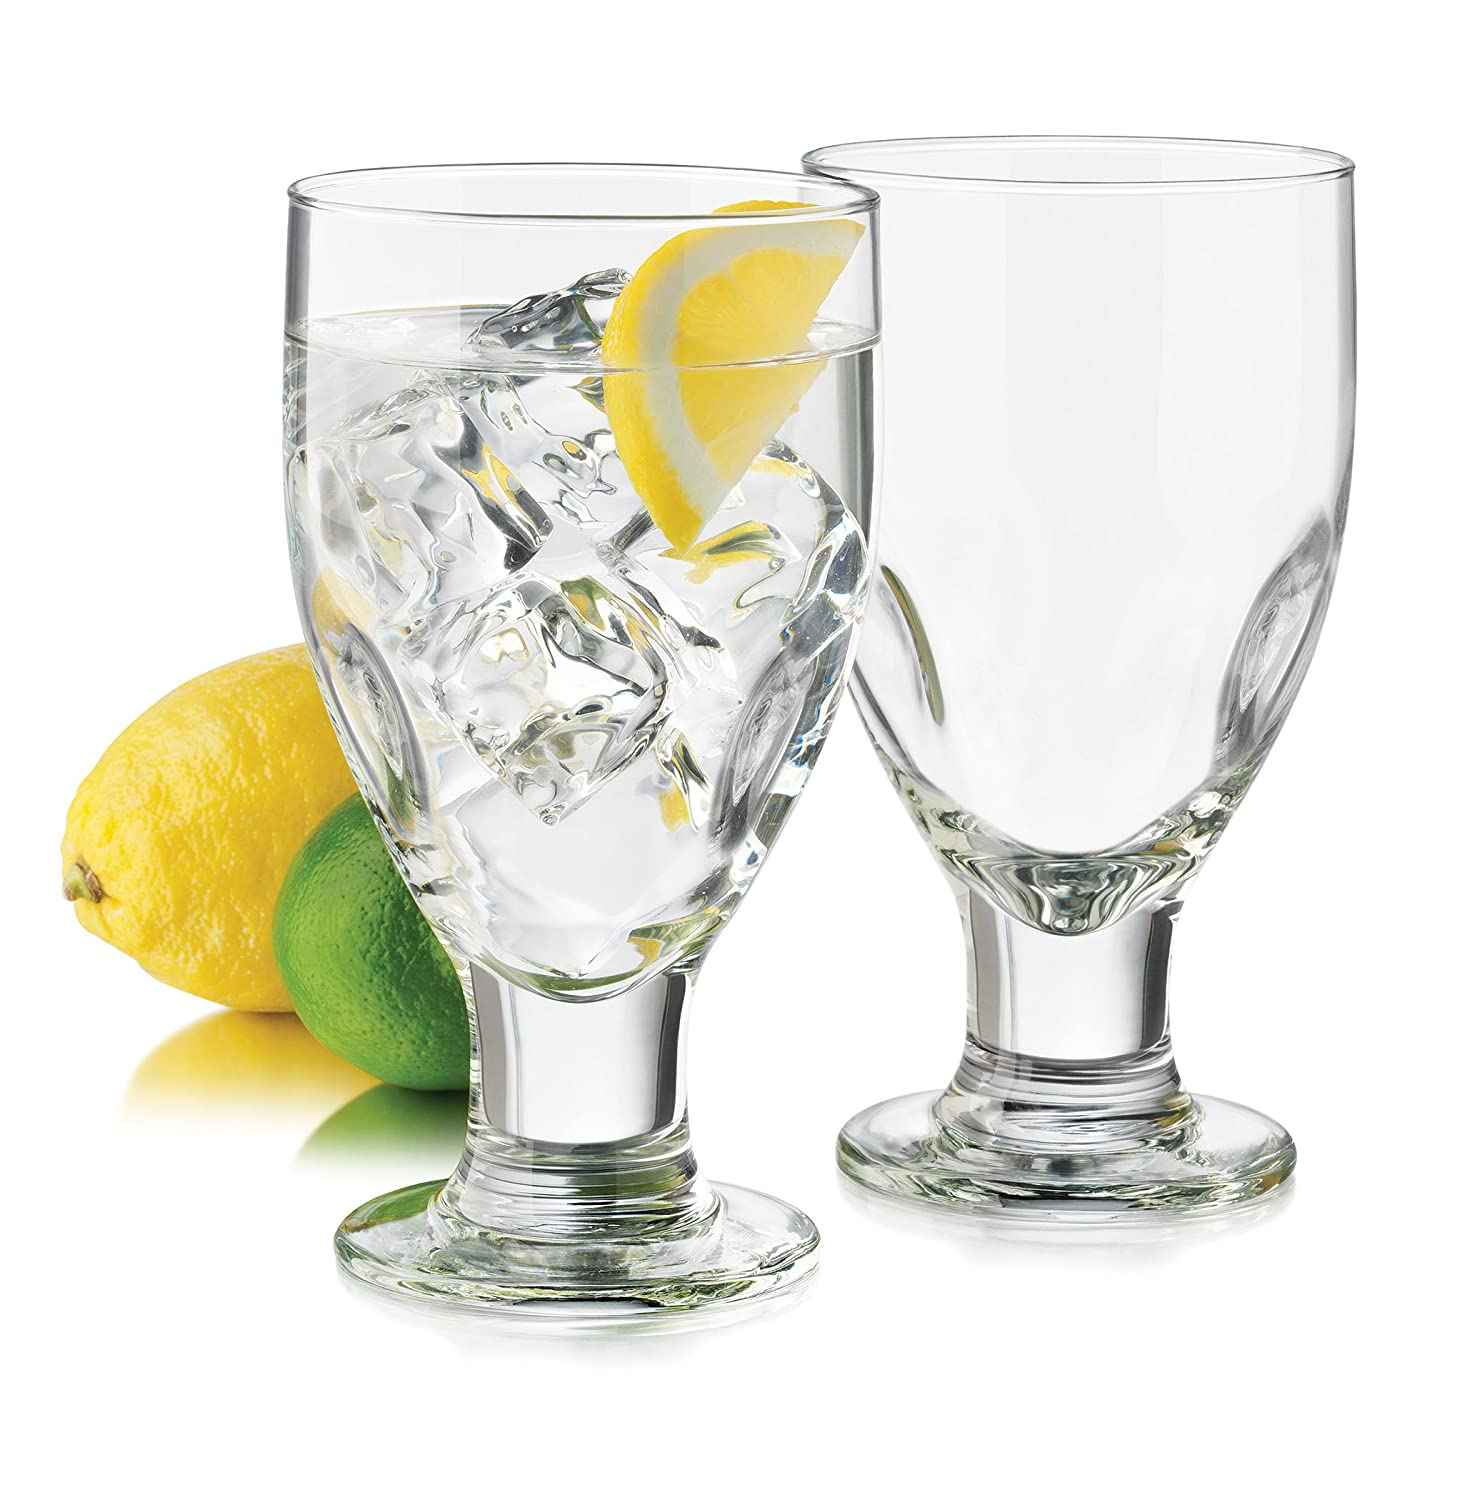 Libbey 4-Piece Impressions Goblet Glass, 17.5-Ounce, Clear 3292S4